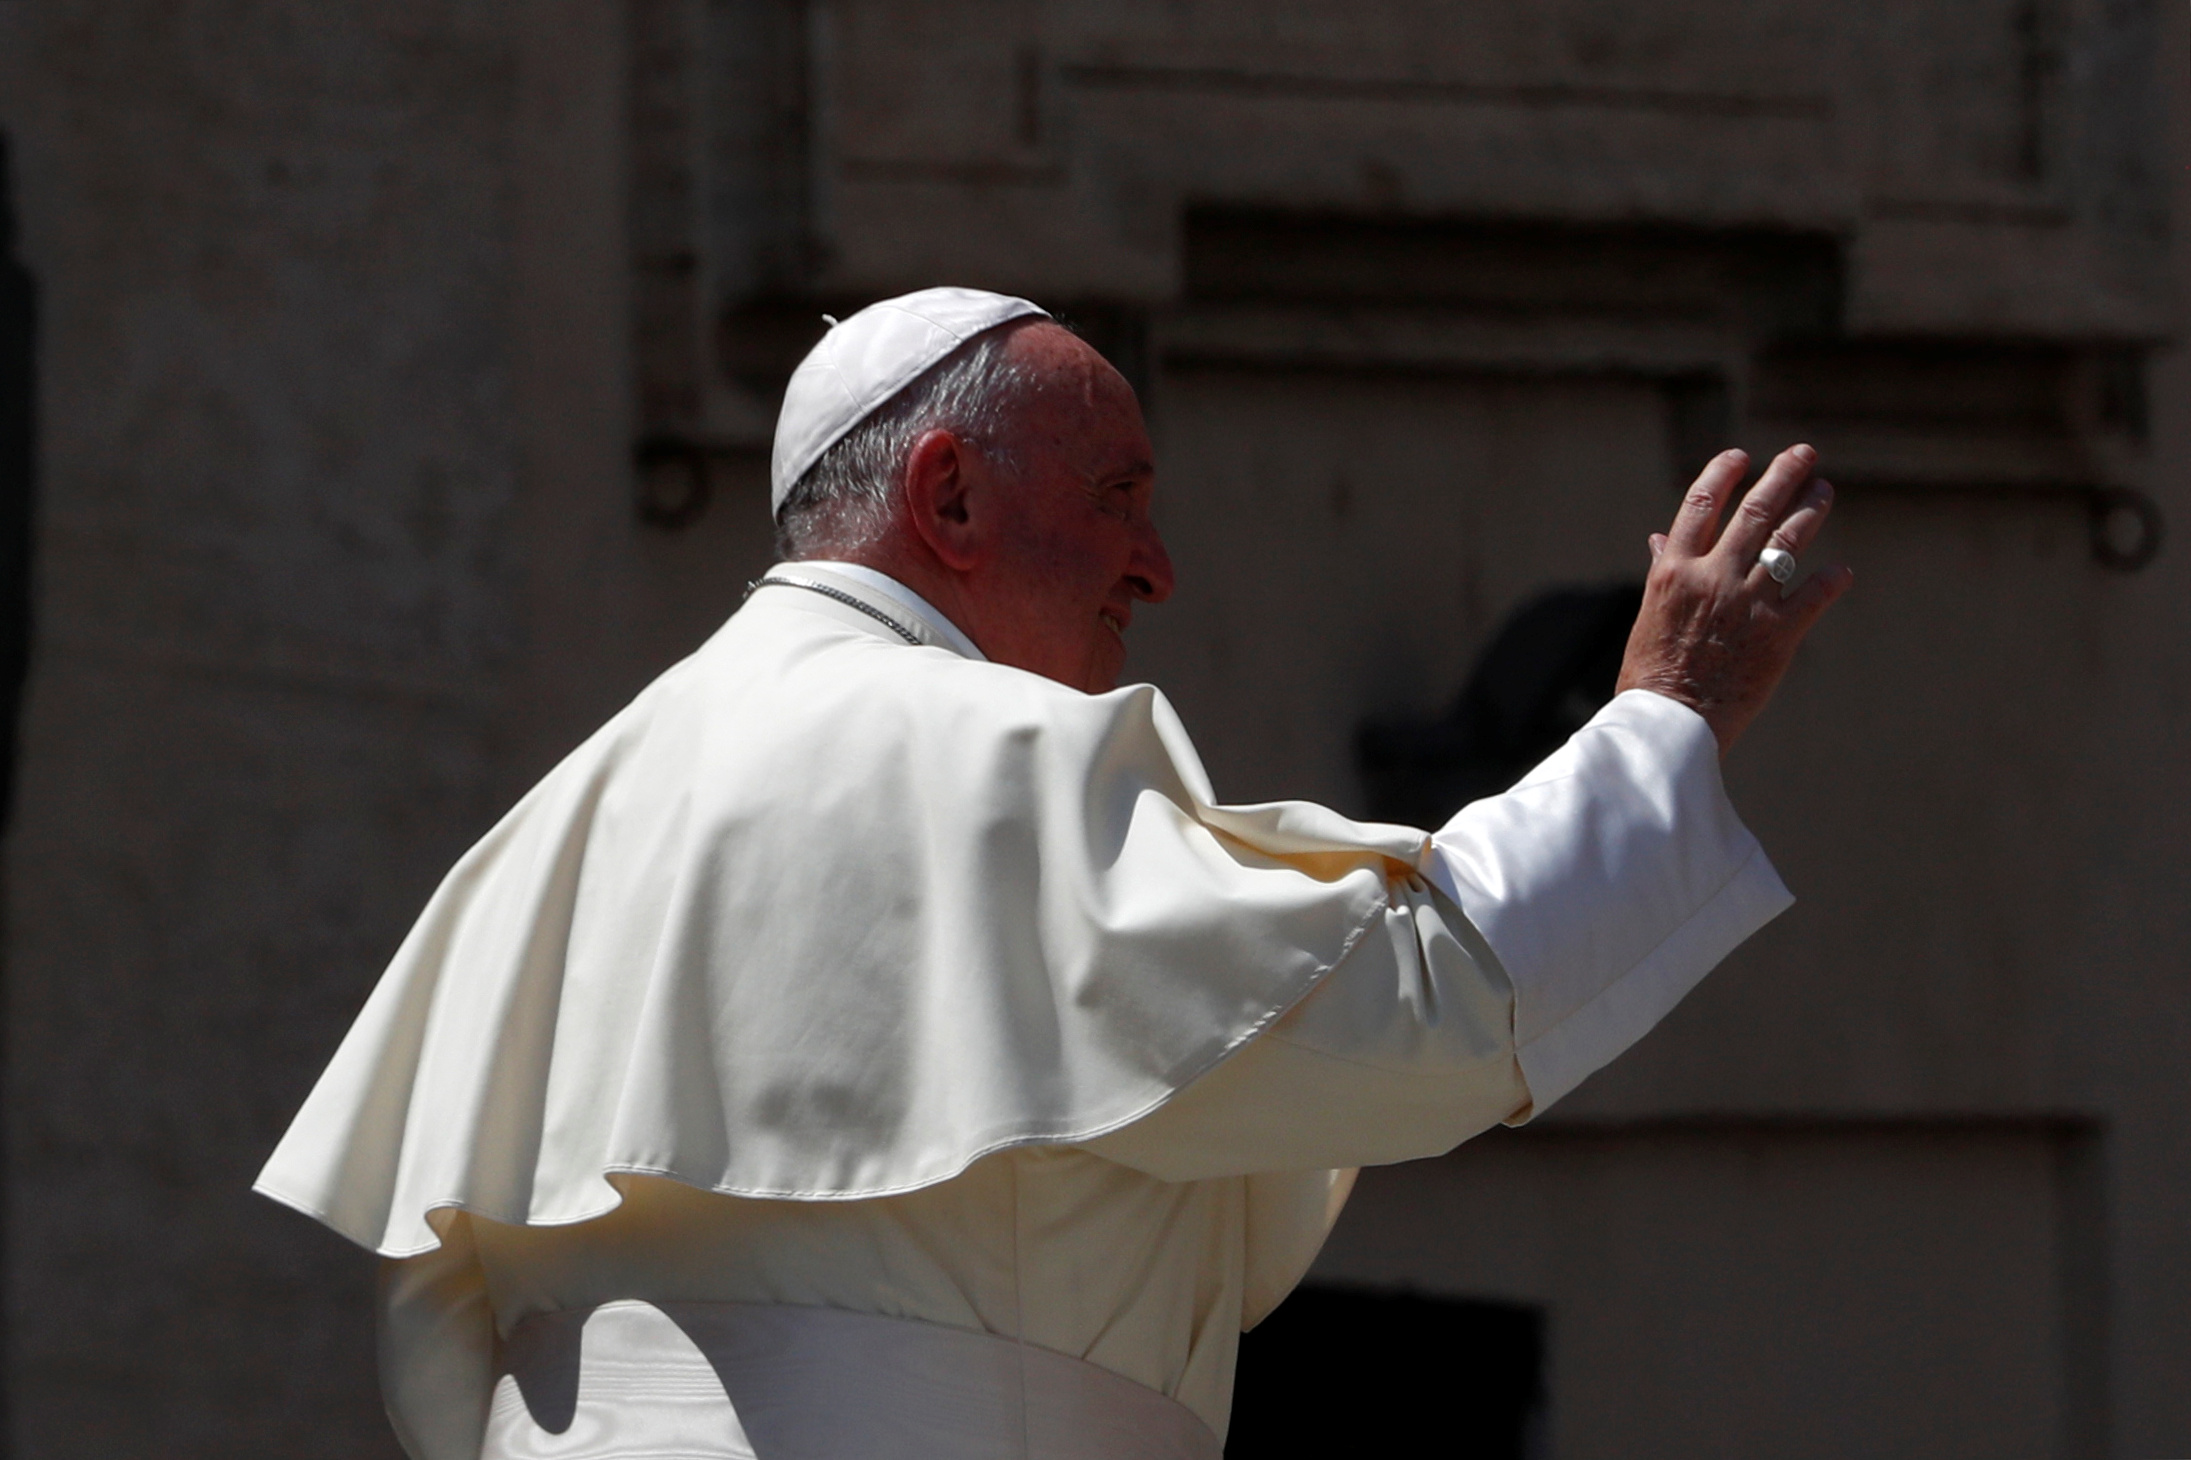 Pope Francis waves as he leaves after a meeting with Cardinal Gualtiero Bassetti in St. Peter's square at the Vatican